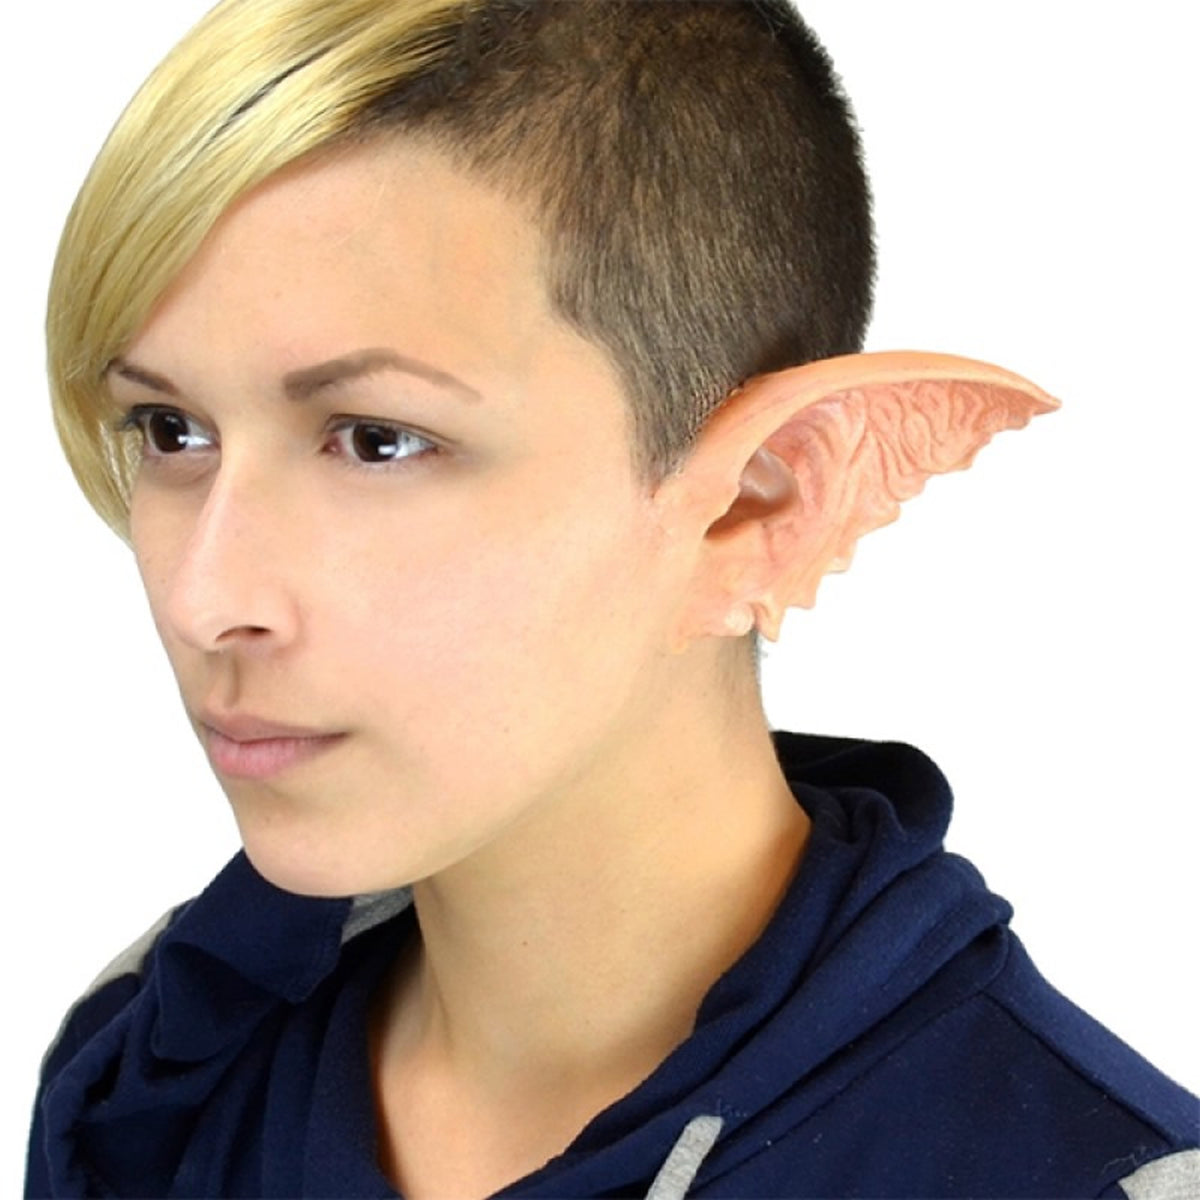 Woochie Latex Prosthetic Gremlin Ears - Red Carpet FX - Professional Makeup